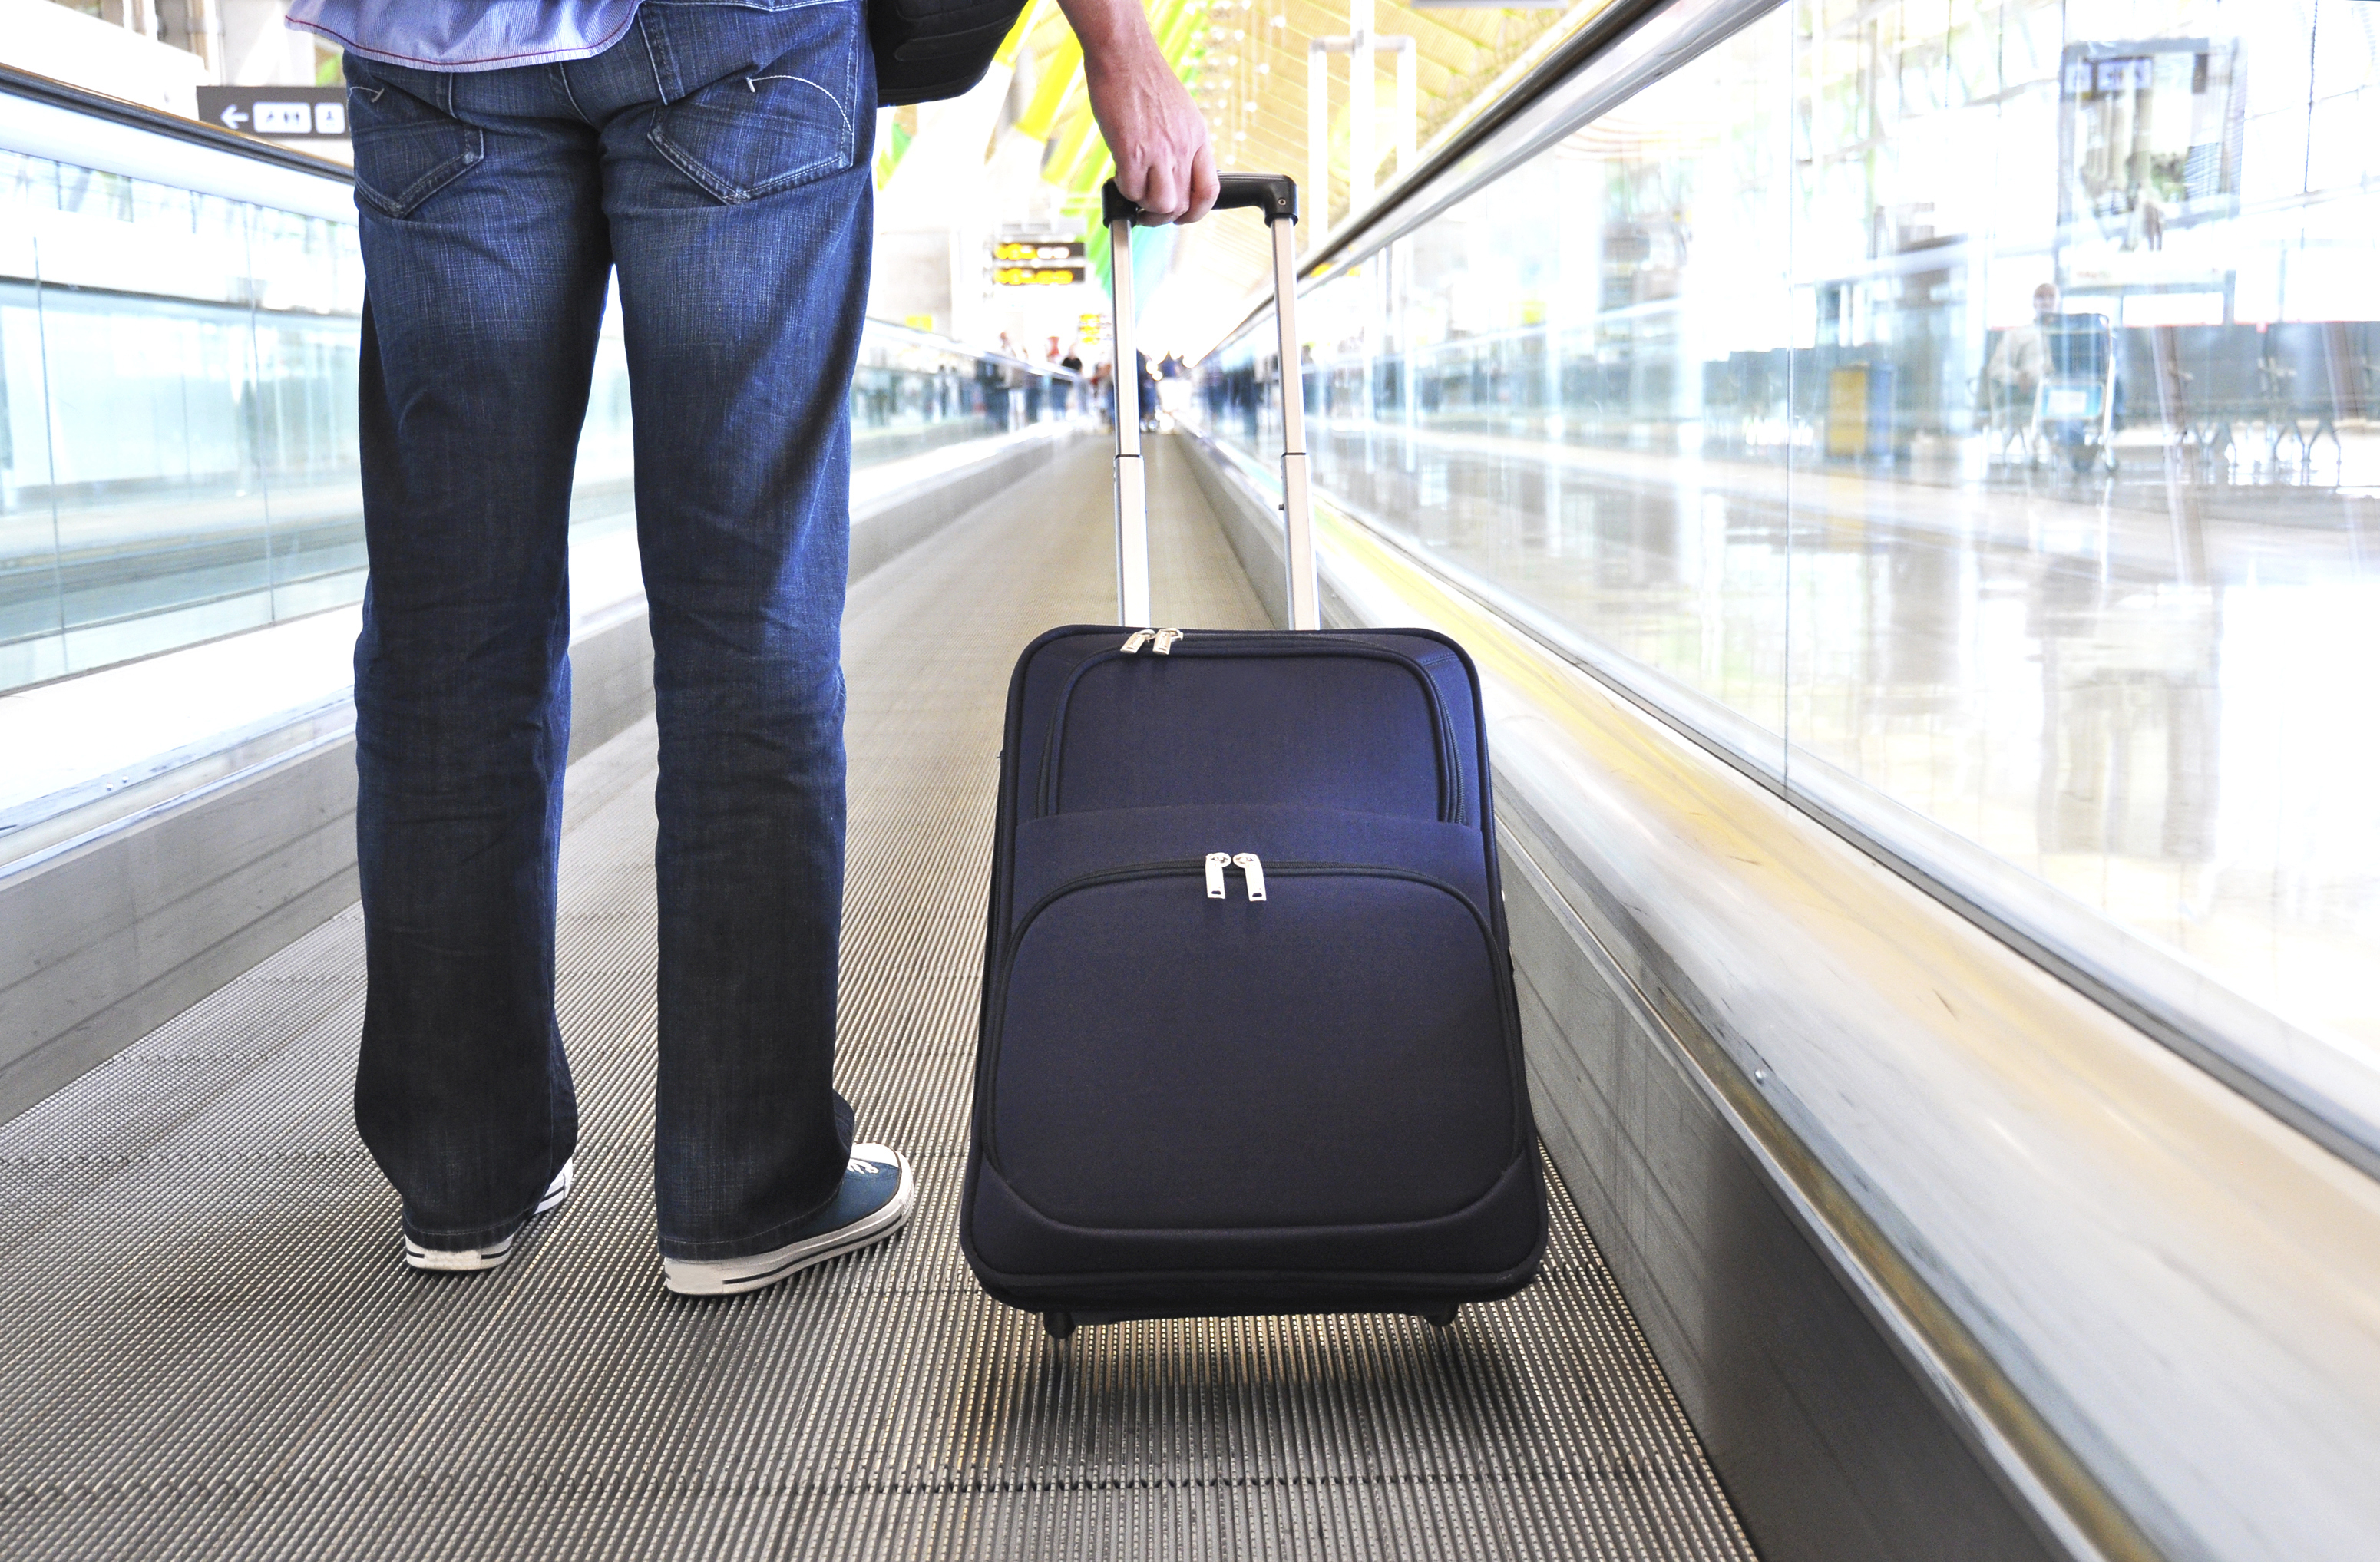 Minimising hassle when travelling for business